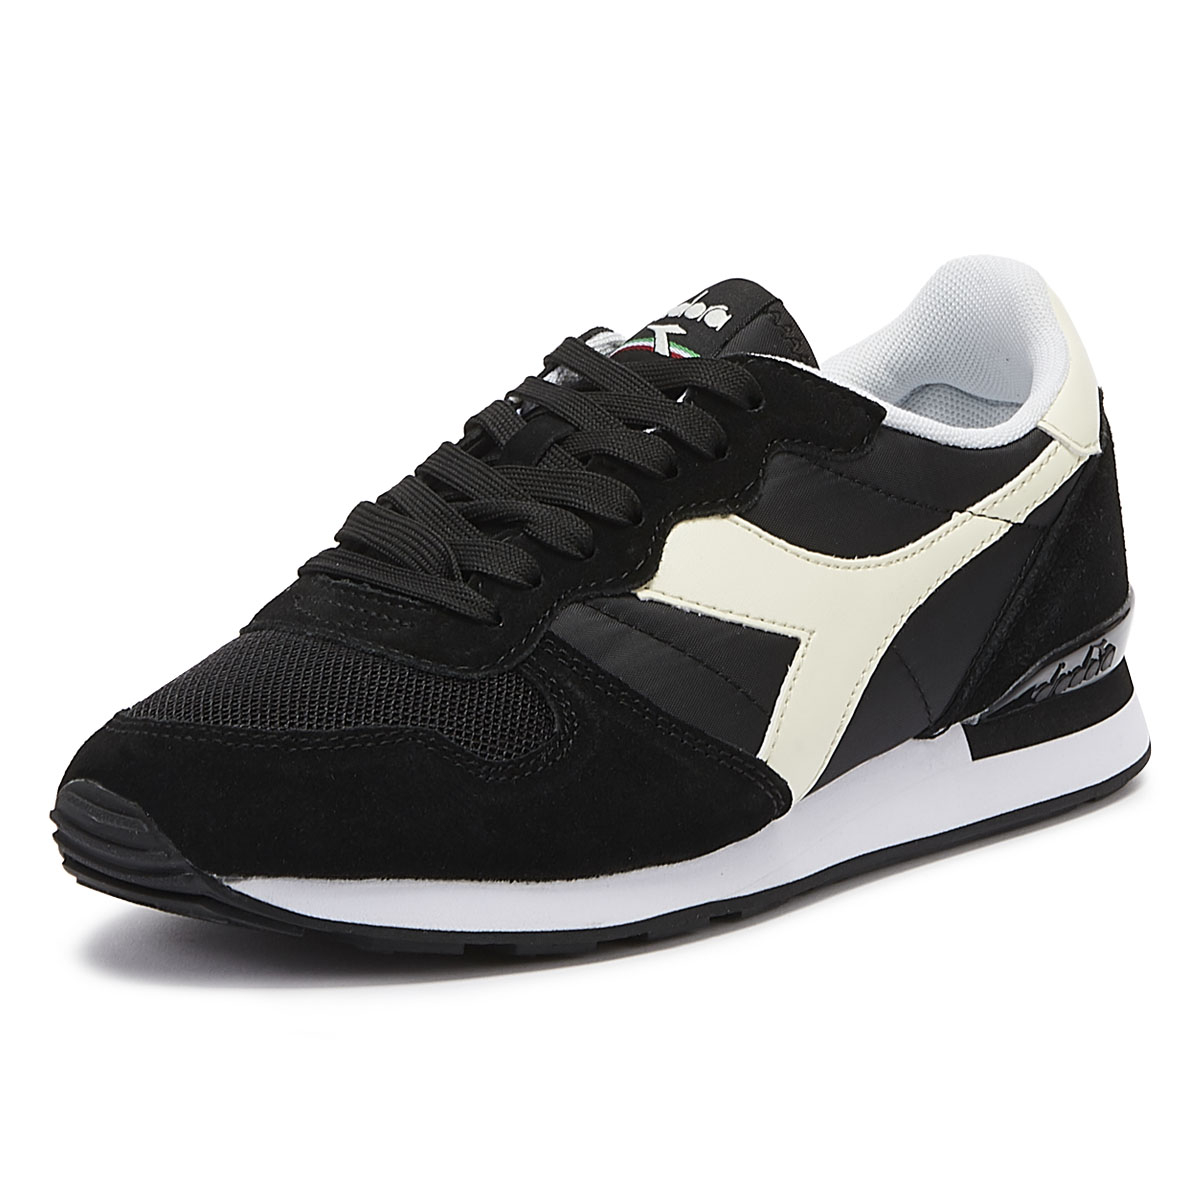 f85cbb01 Details about Diadora Camaro Mens Black / White Trainers Lace Up Sport  Casual Shoes